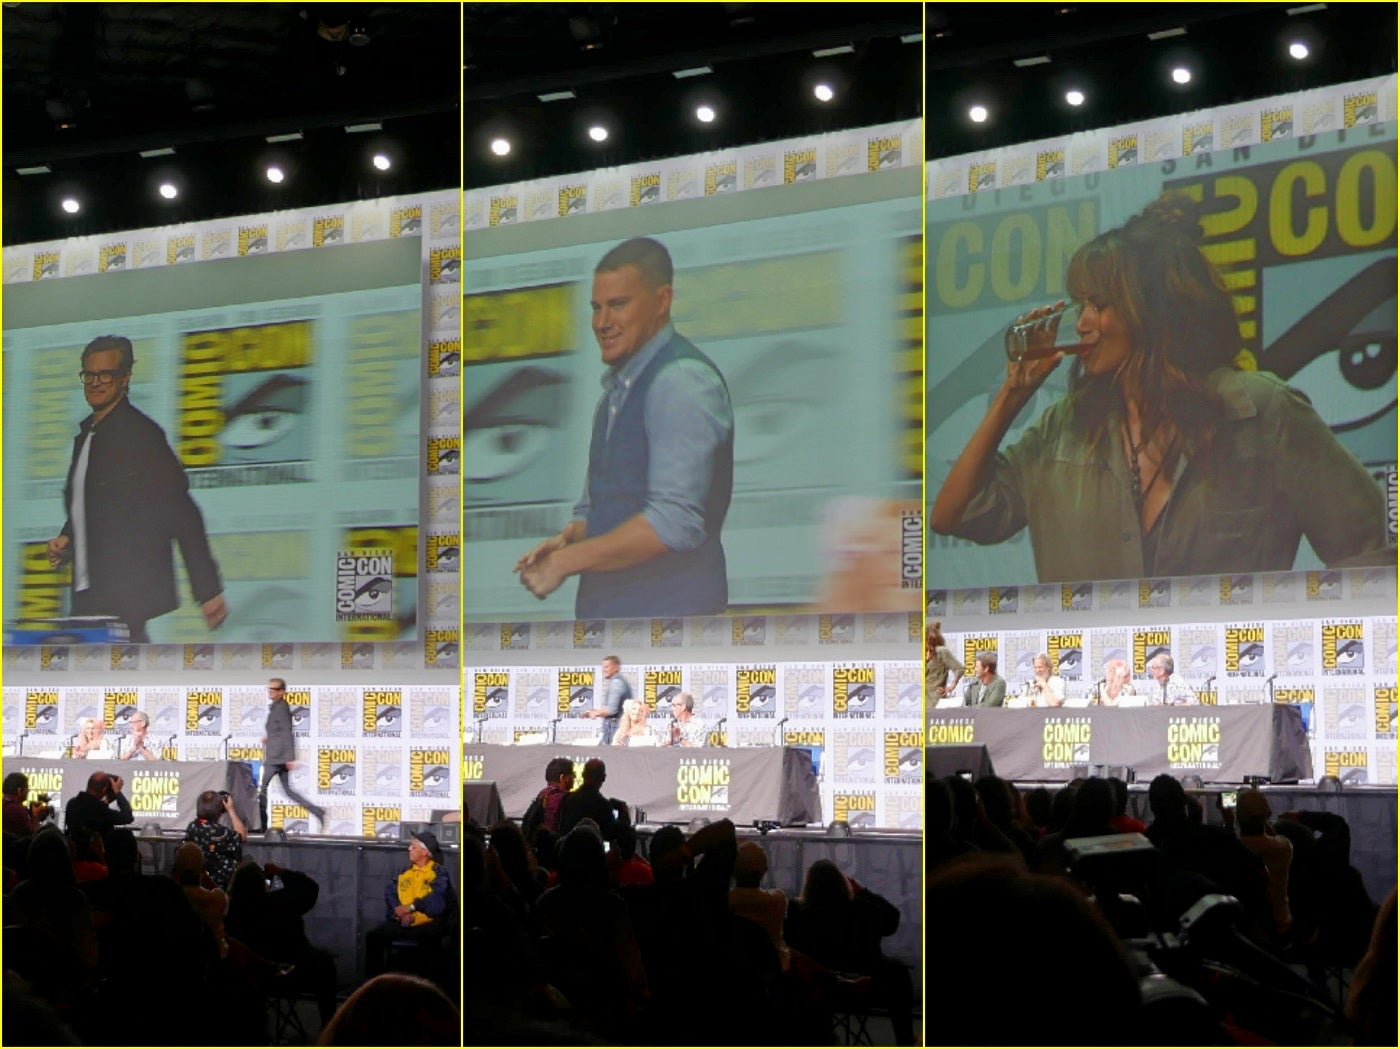 Actors Colin Firth, Channing Tatum and Halle Berry take thestage at Hall H, Comic-Con 2017